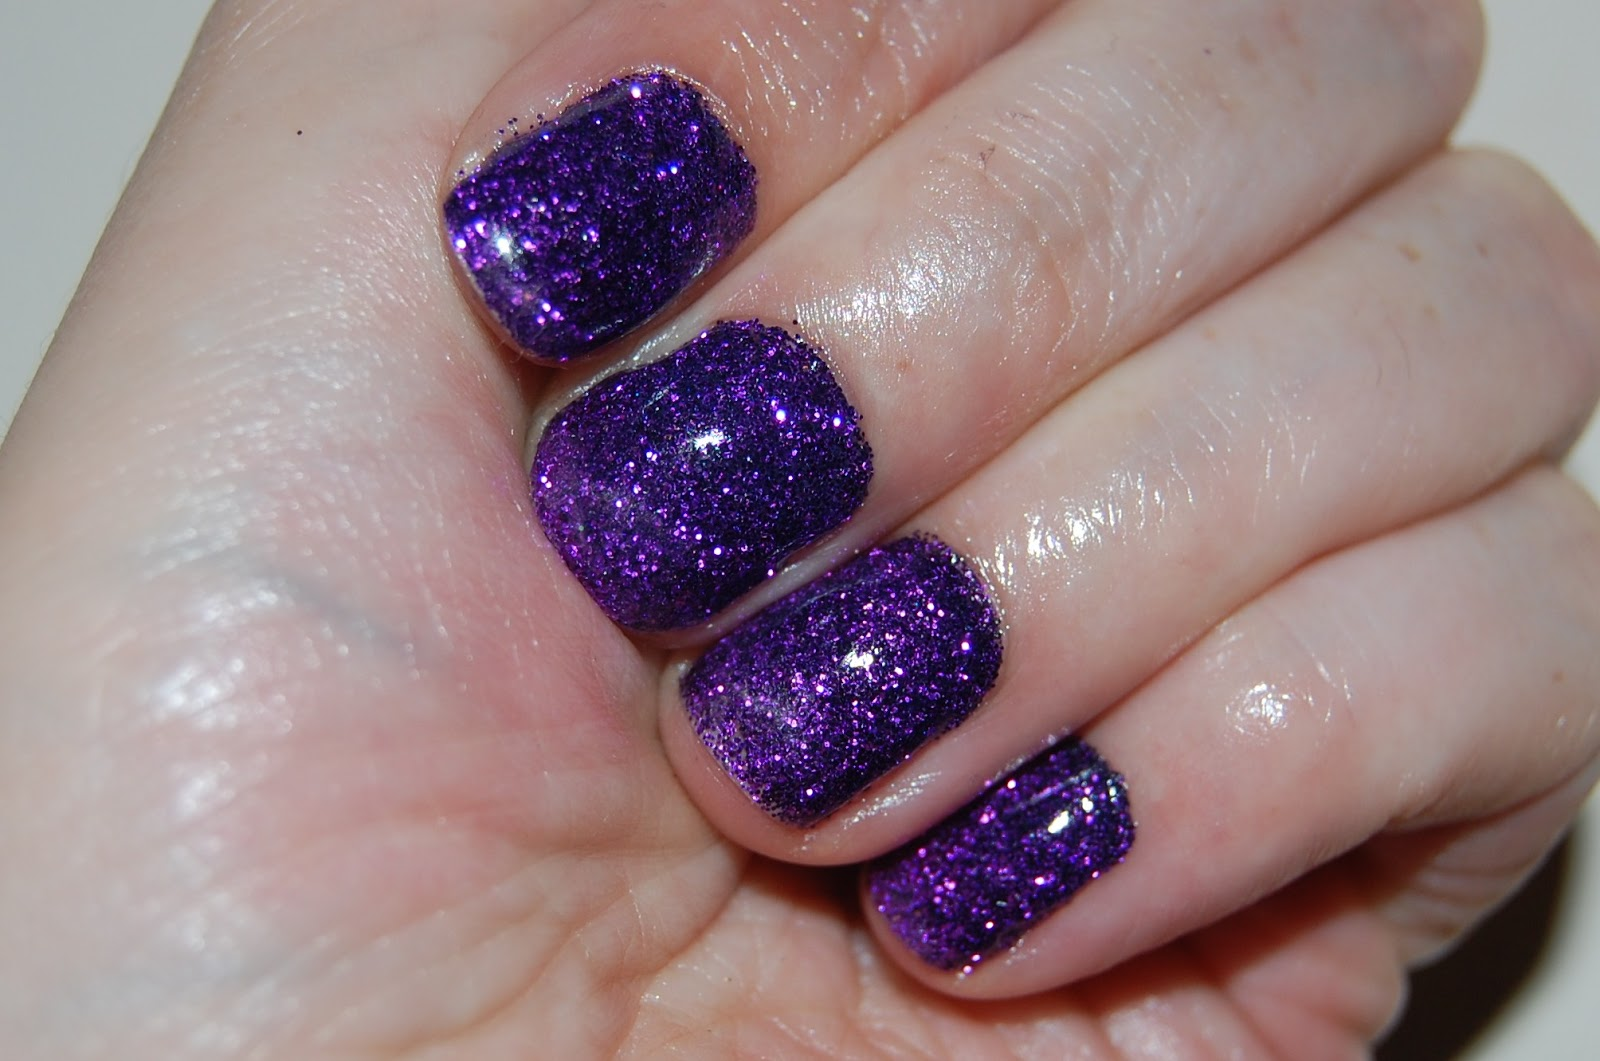 Lipstick Fridays - Beauty Blog: Purple Rockstar Nails